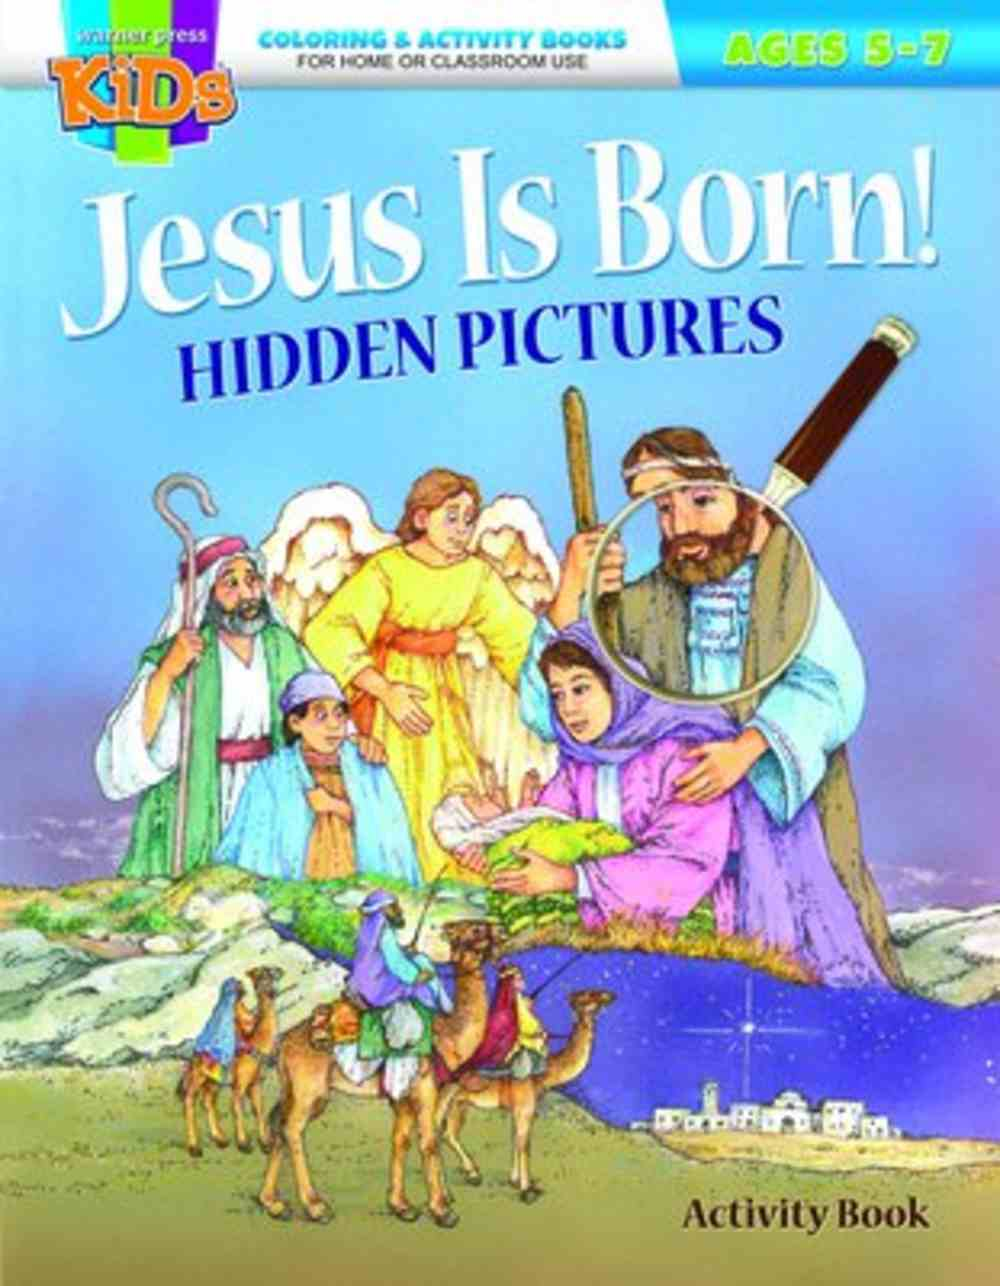 Jesus is Born! Hidden Pictures (Ages 5-7 Reproducible) (Warner Press Colouring & Activity Books Series) Paperback